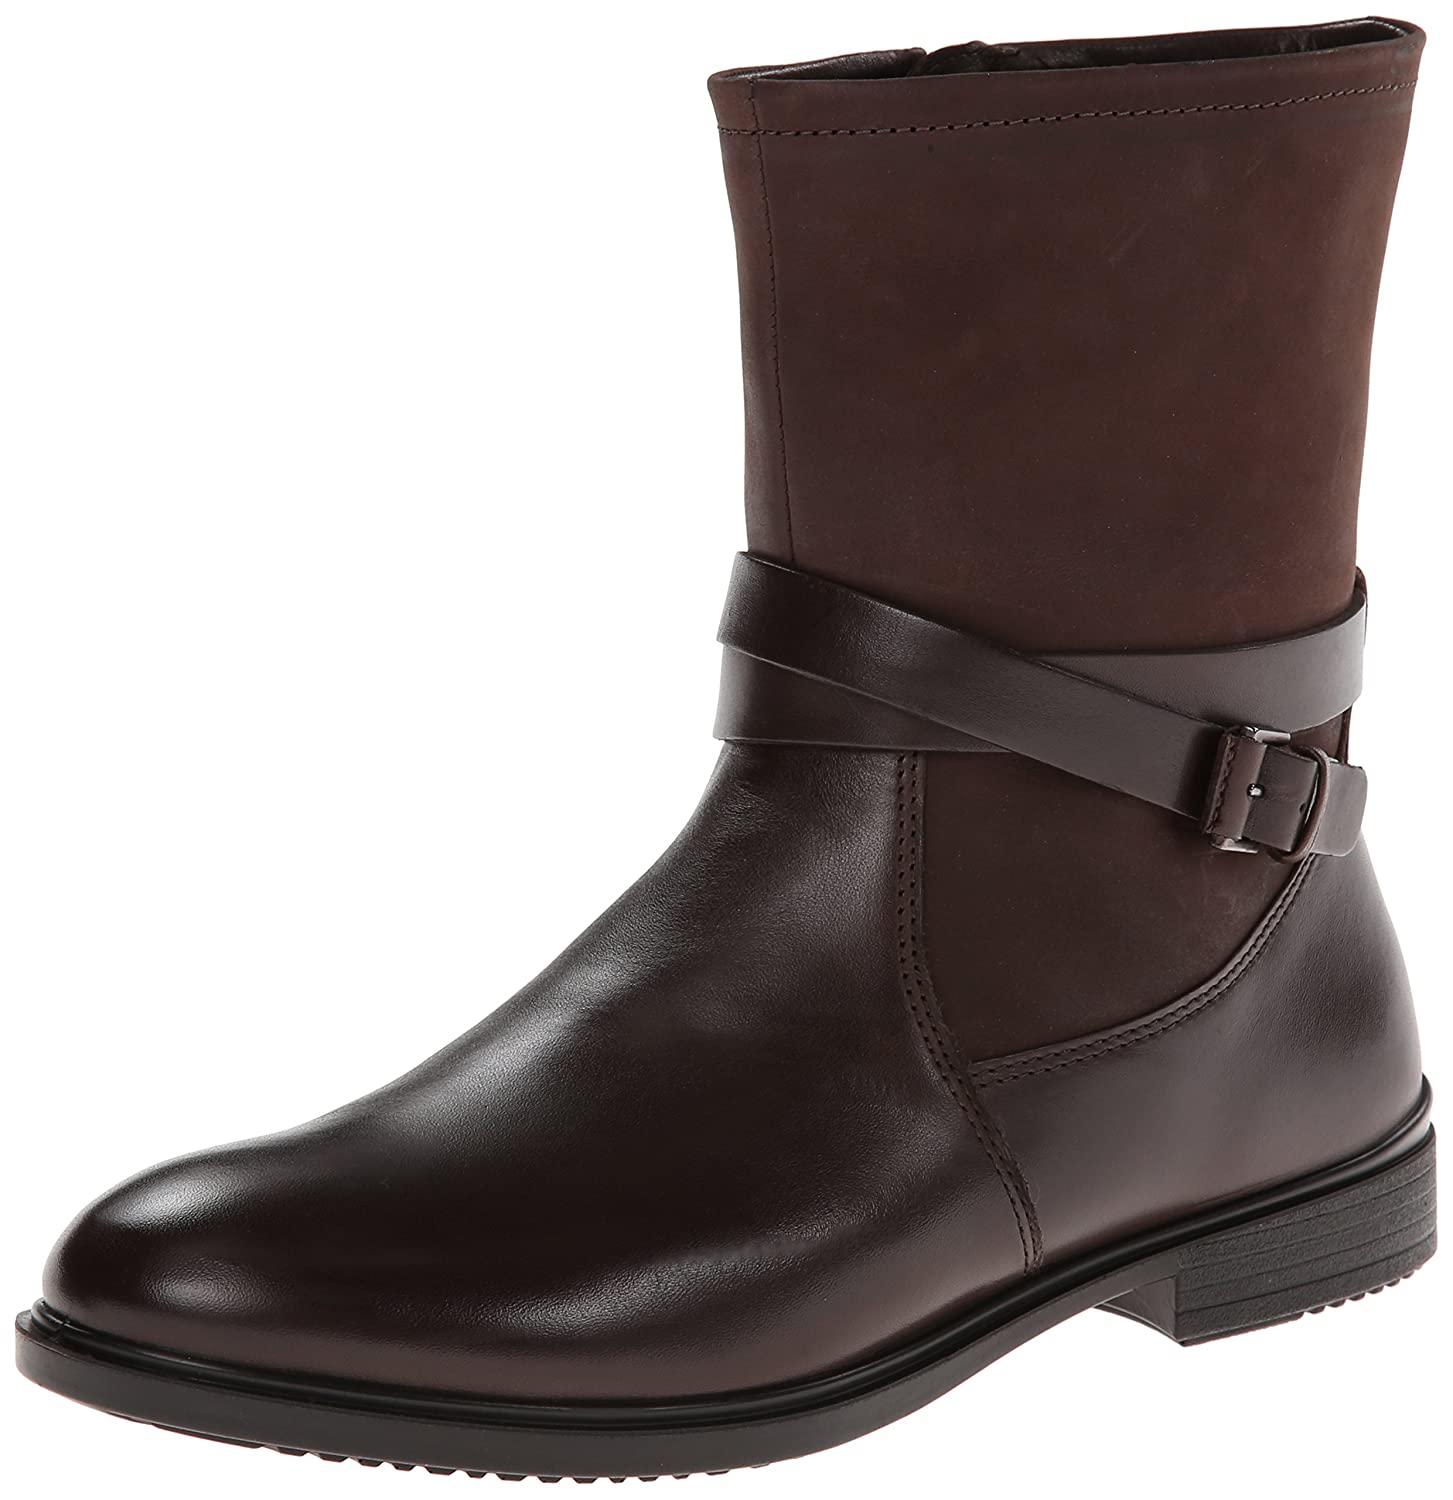 Amazoncom  ECCO Womens Touch 15 Buckle Boot Coffee 40 EU995 M US   Ankle  Bootie